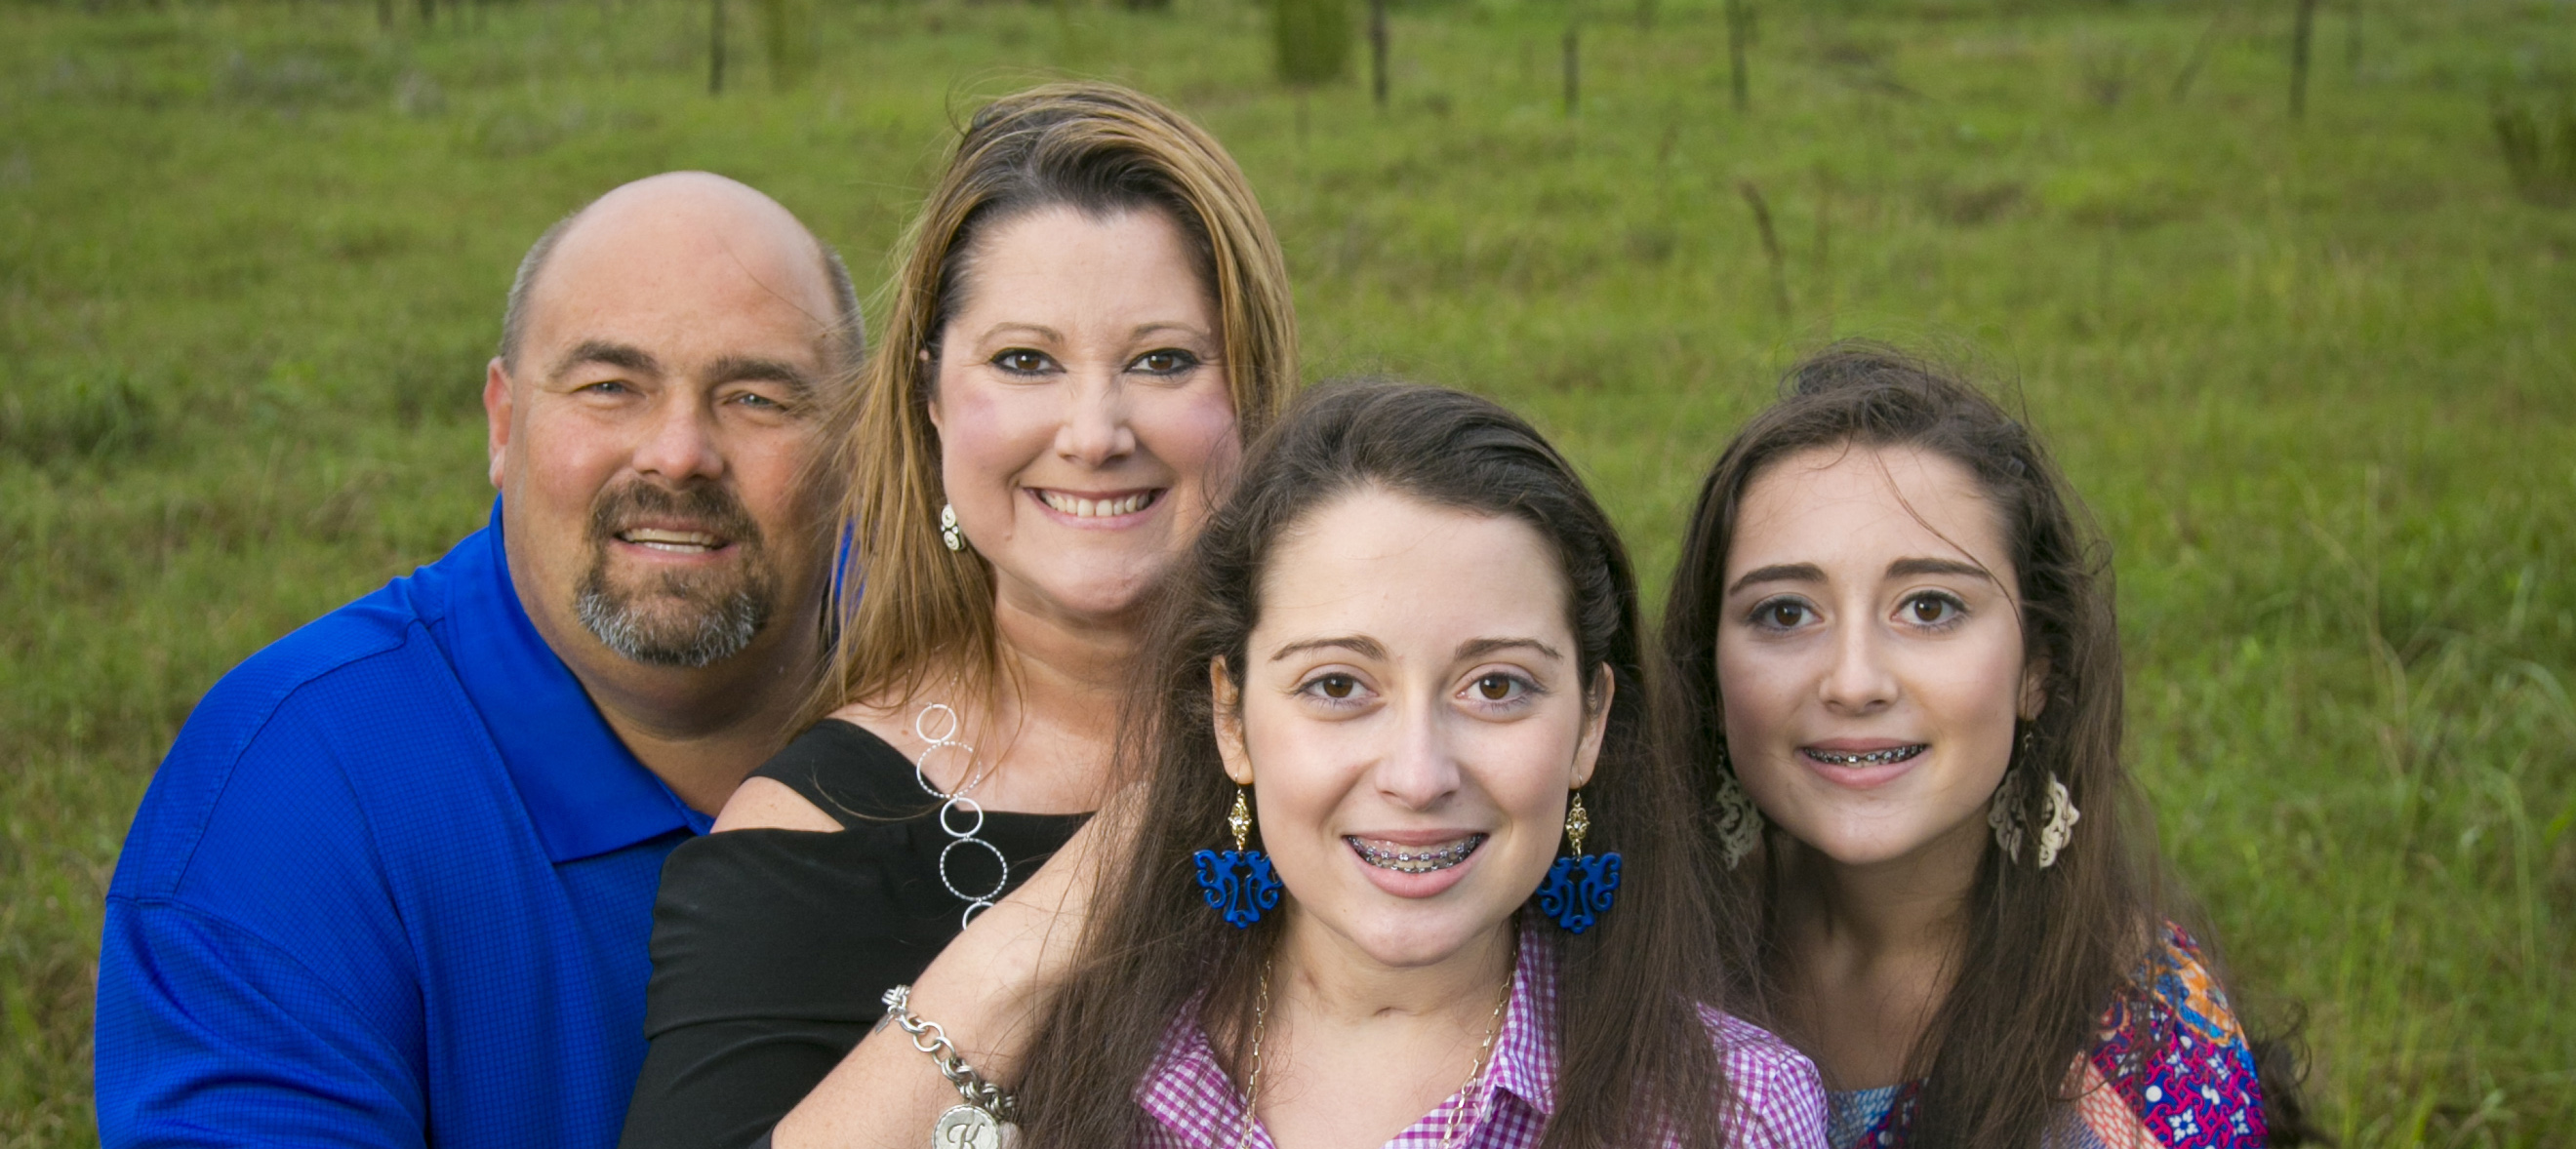 Lindsey Tew and her family